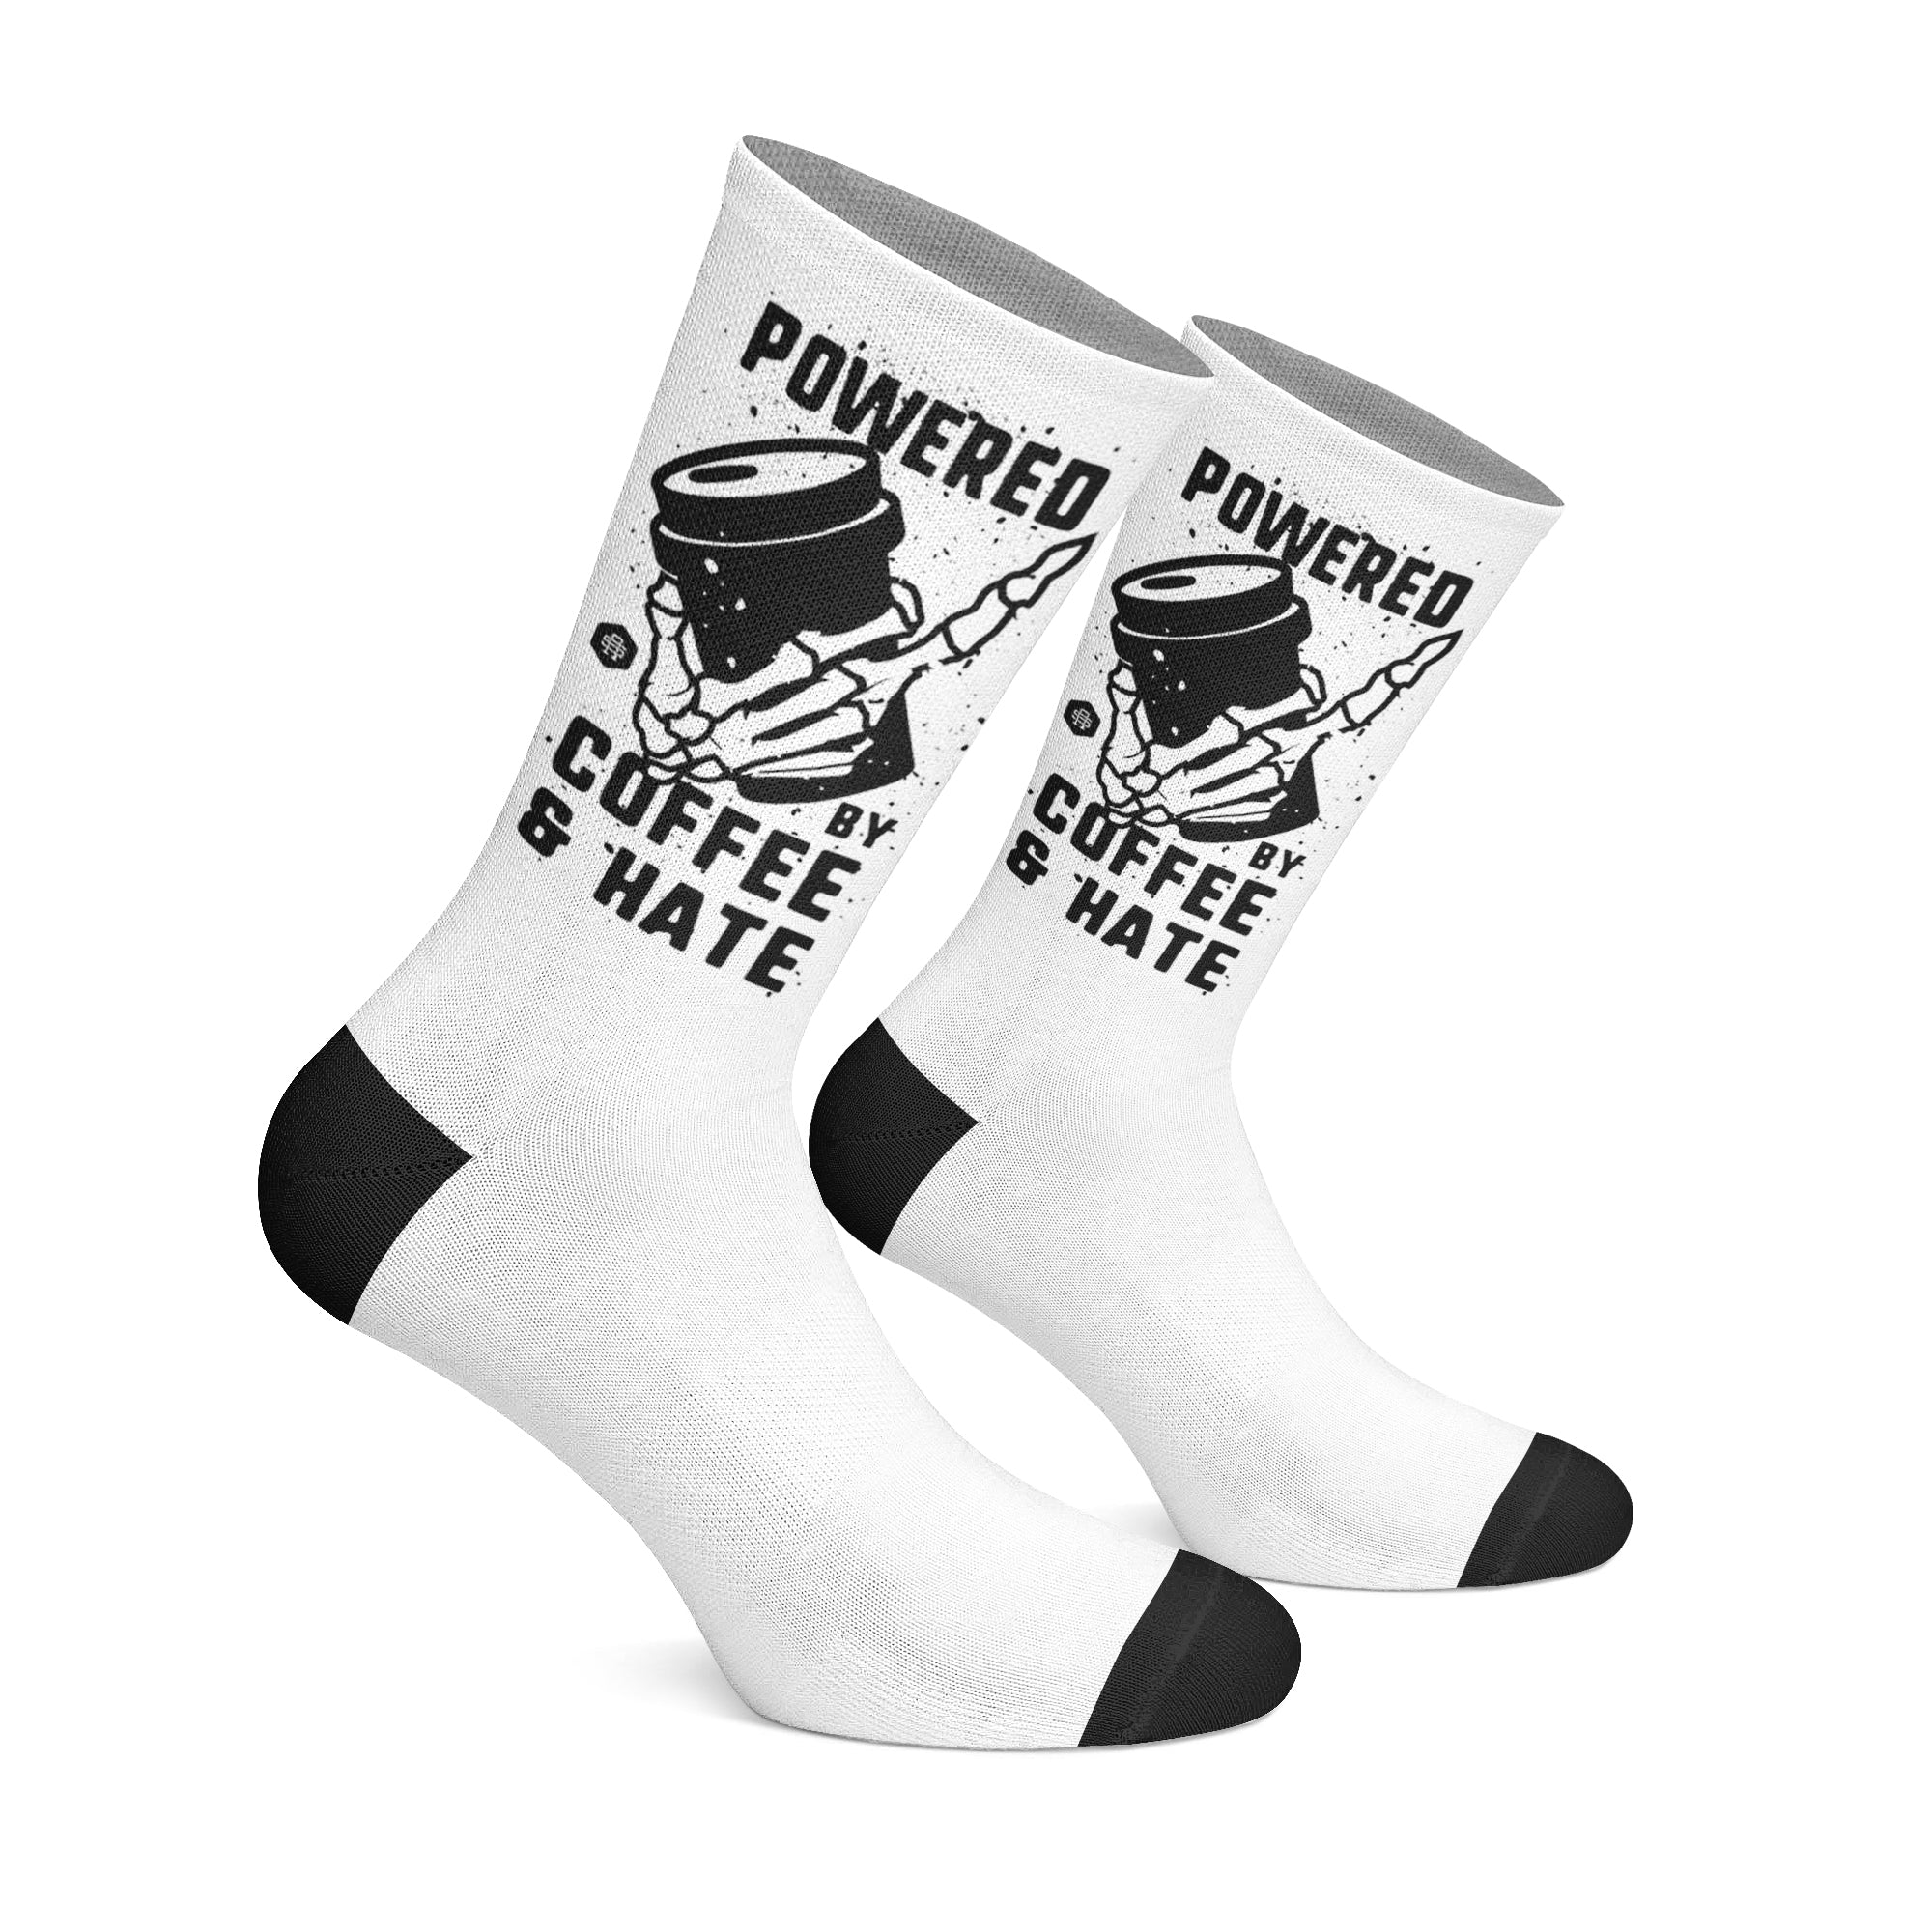 Powered By Coffee And Hate - Socks